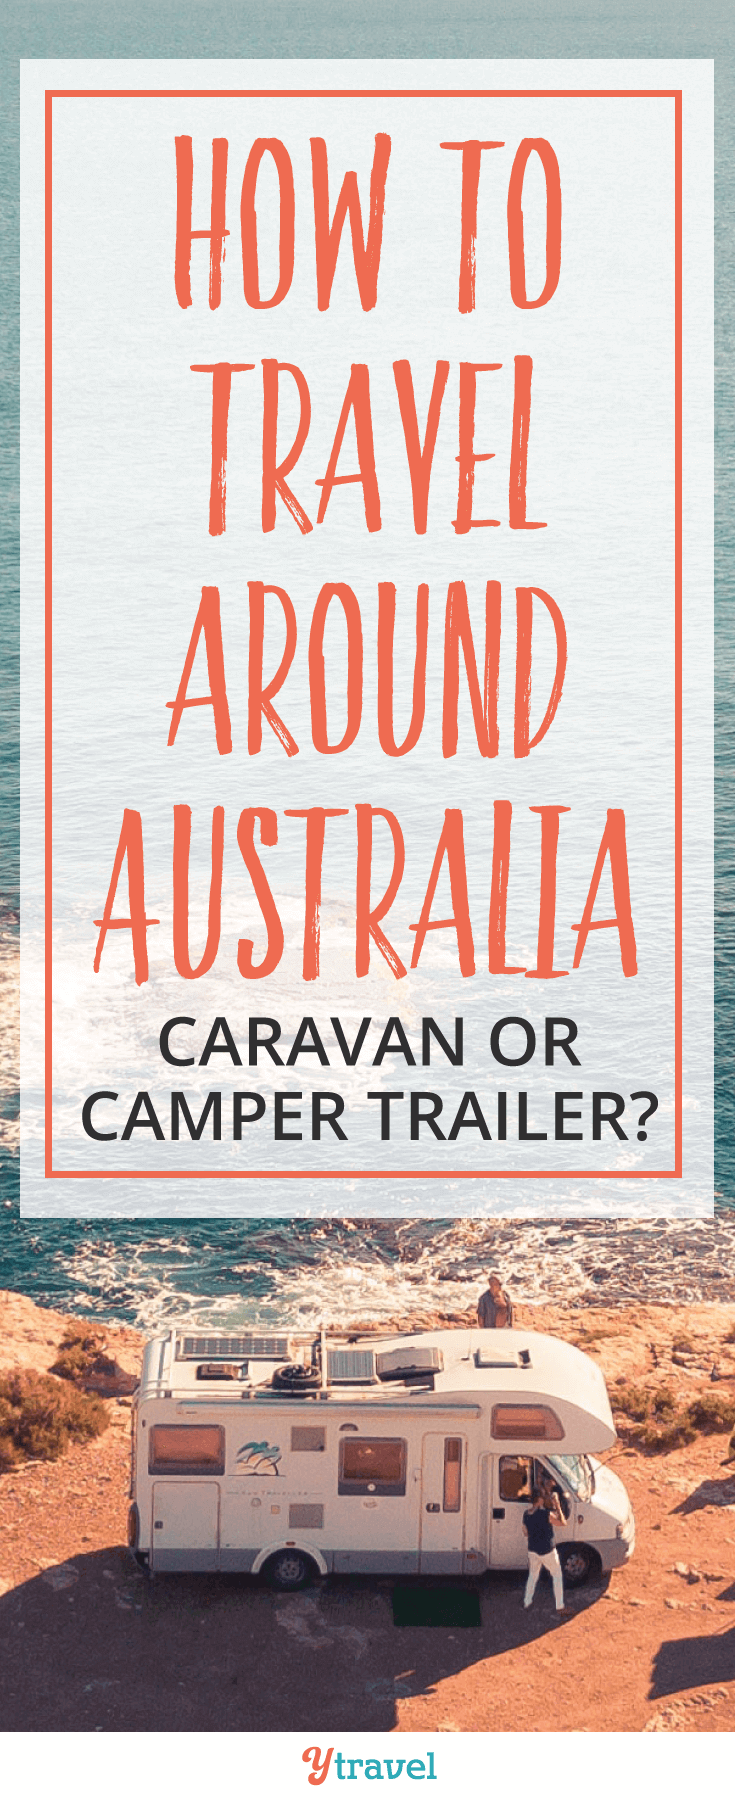 We're sharing with you how to travel around Australia with a camper trailer or caravan. We are covering the pros and cons of both.